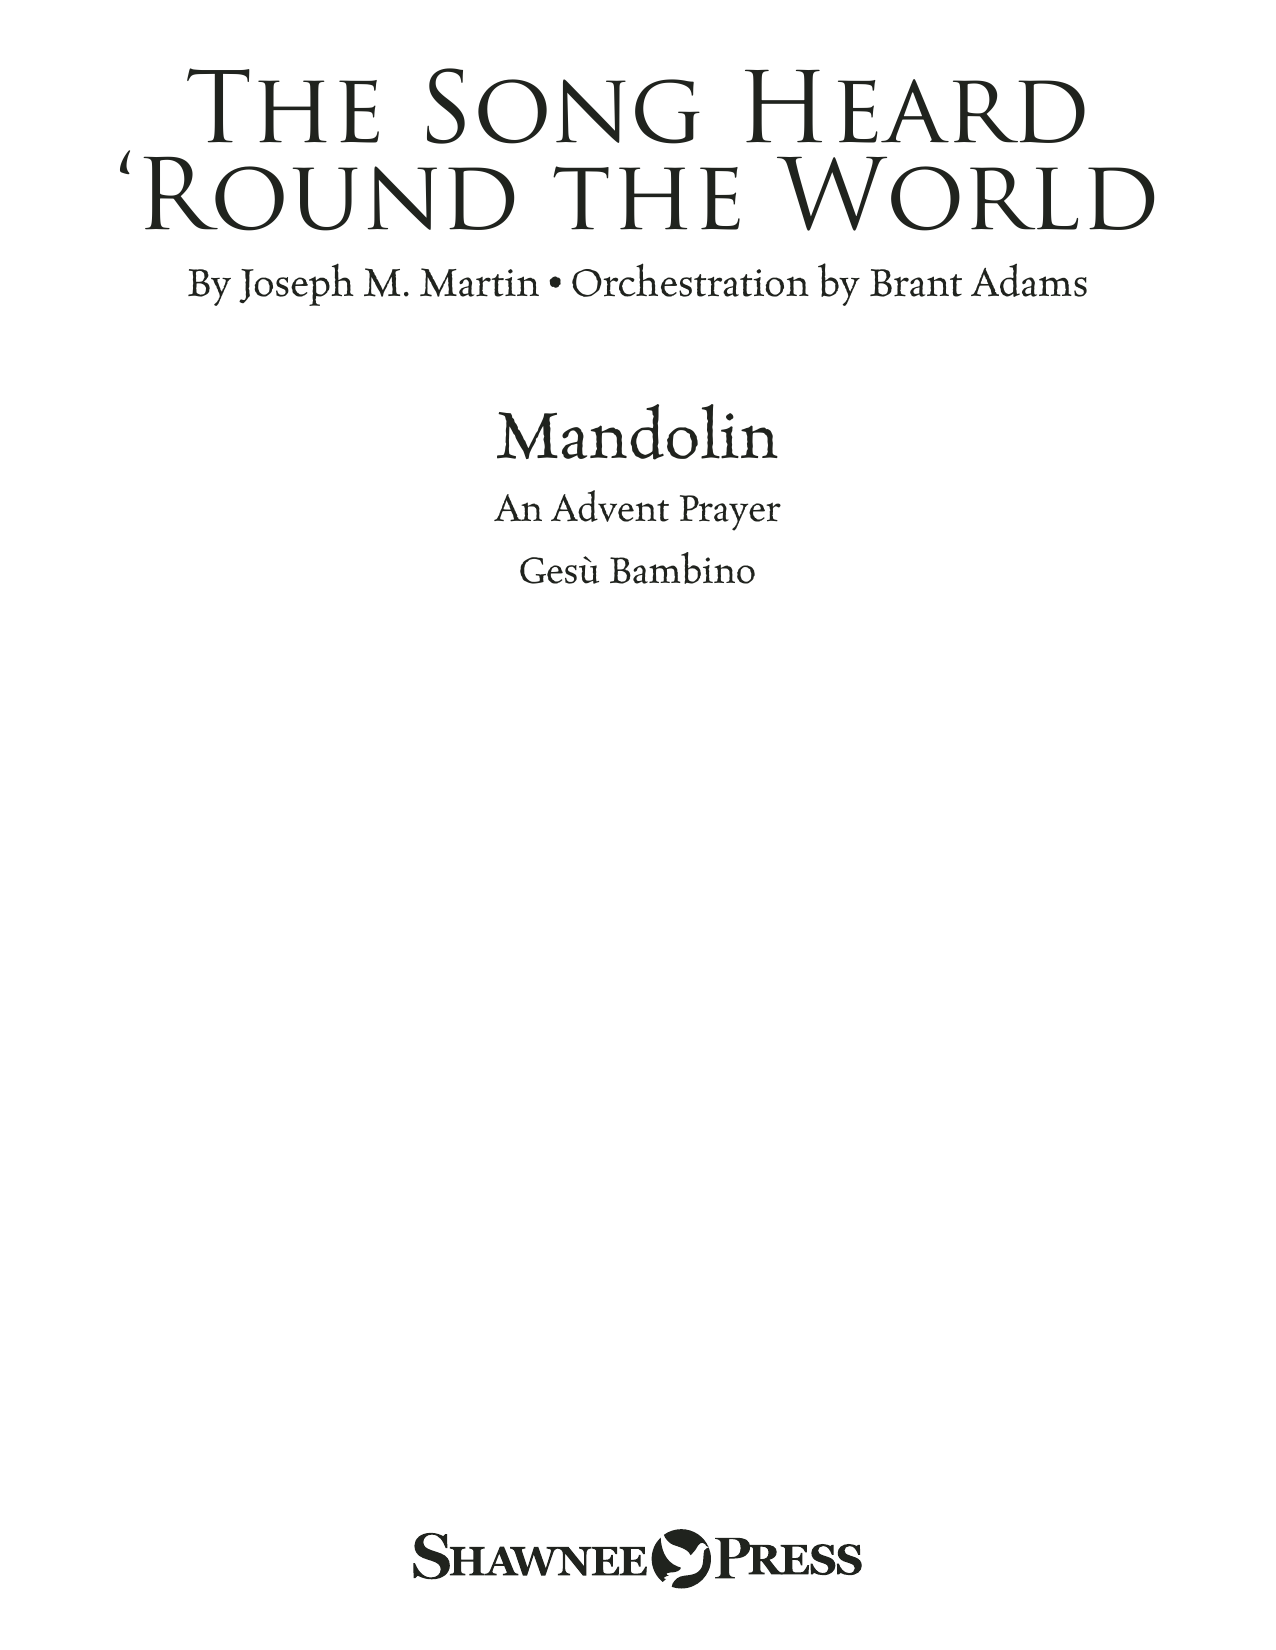 The Song Heard 'Round the World - Mandolin Sheet Music